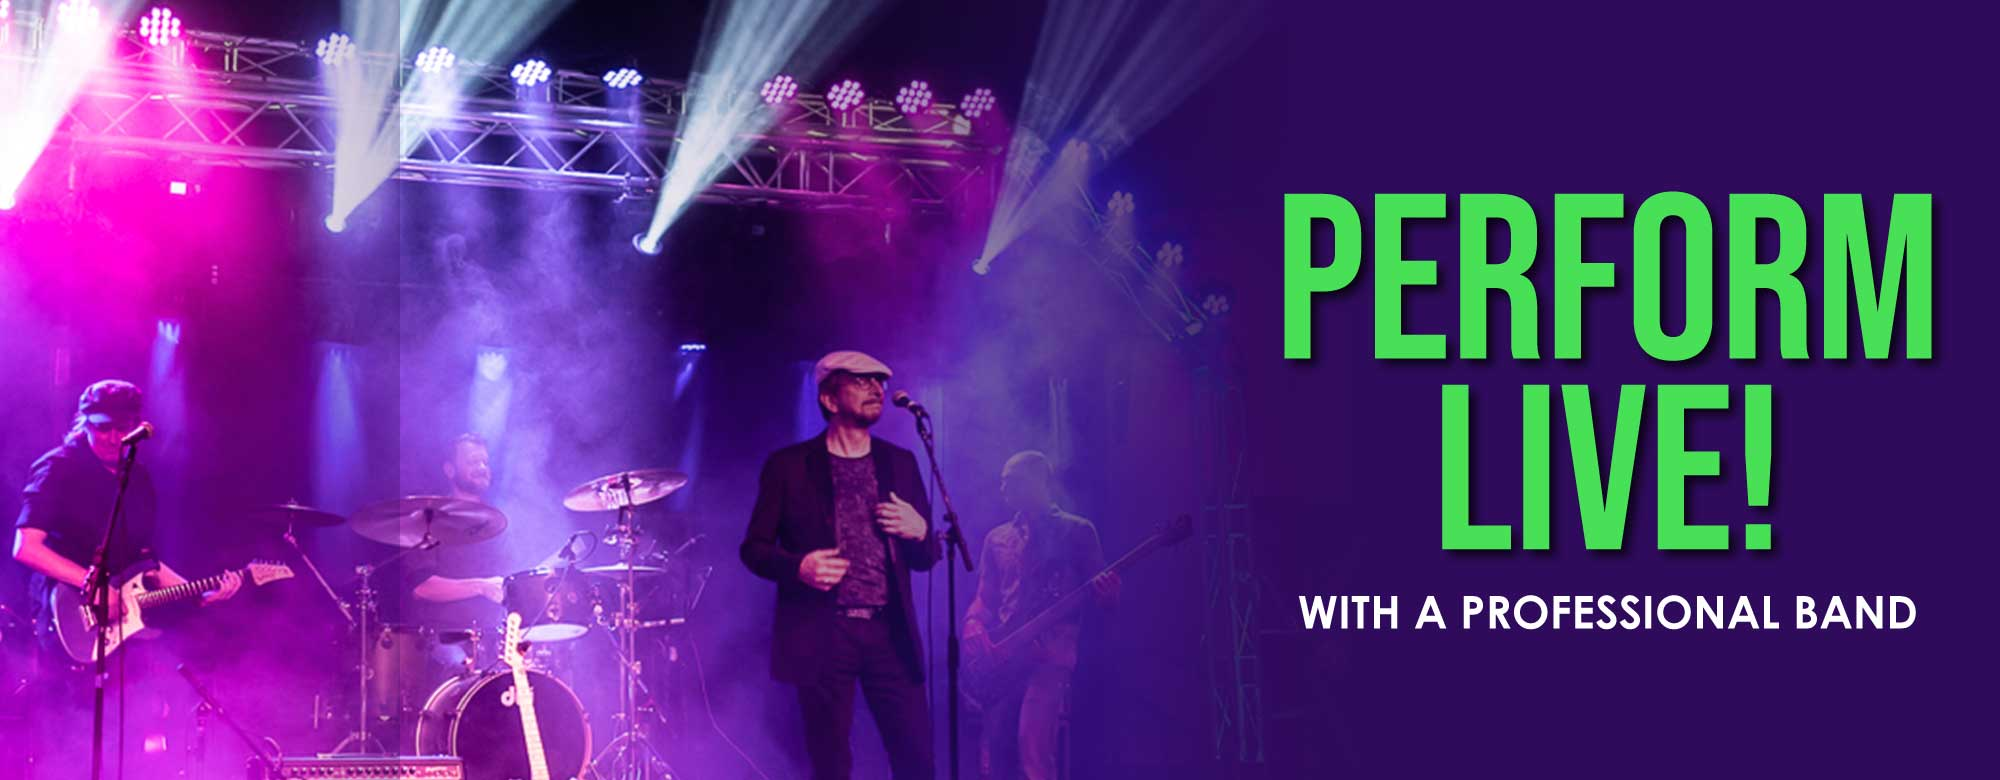 Perform live with a professional band